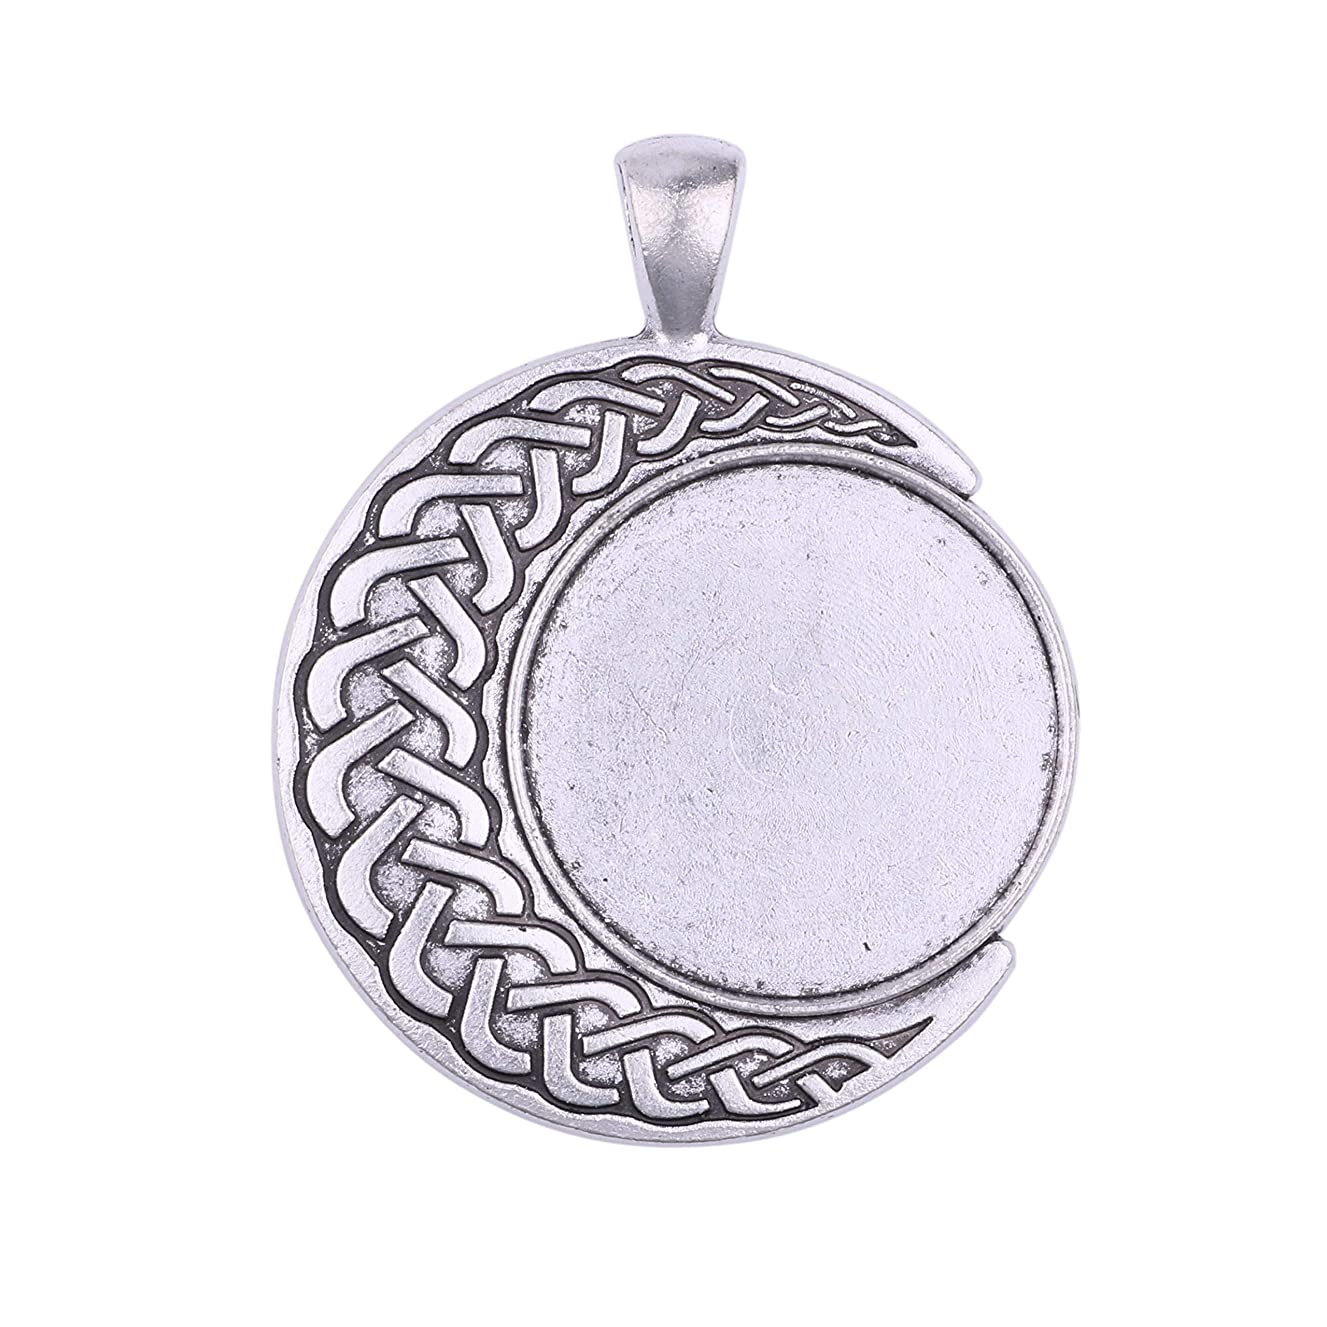 15pcs 25mm Antique Silver Round Star Moon Trays Bezels Cameo Setting Cabochon Pendant Charms for Crafting DIY Neckalce Jewelry Making